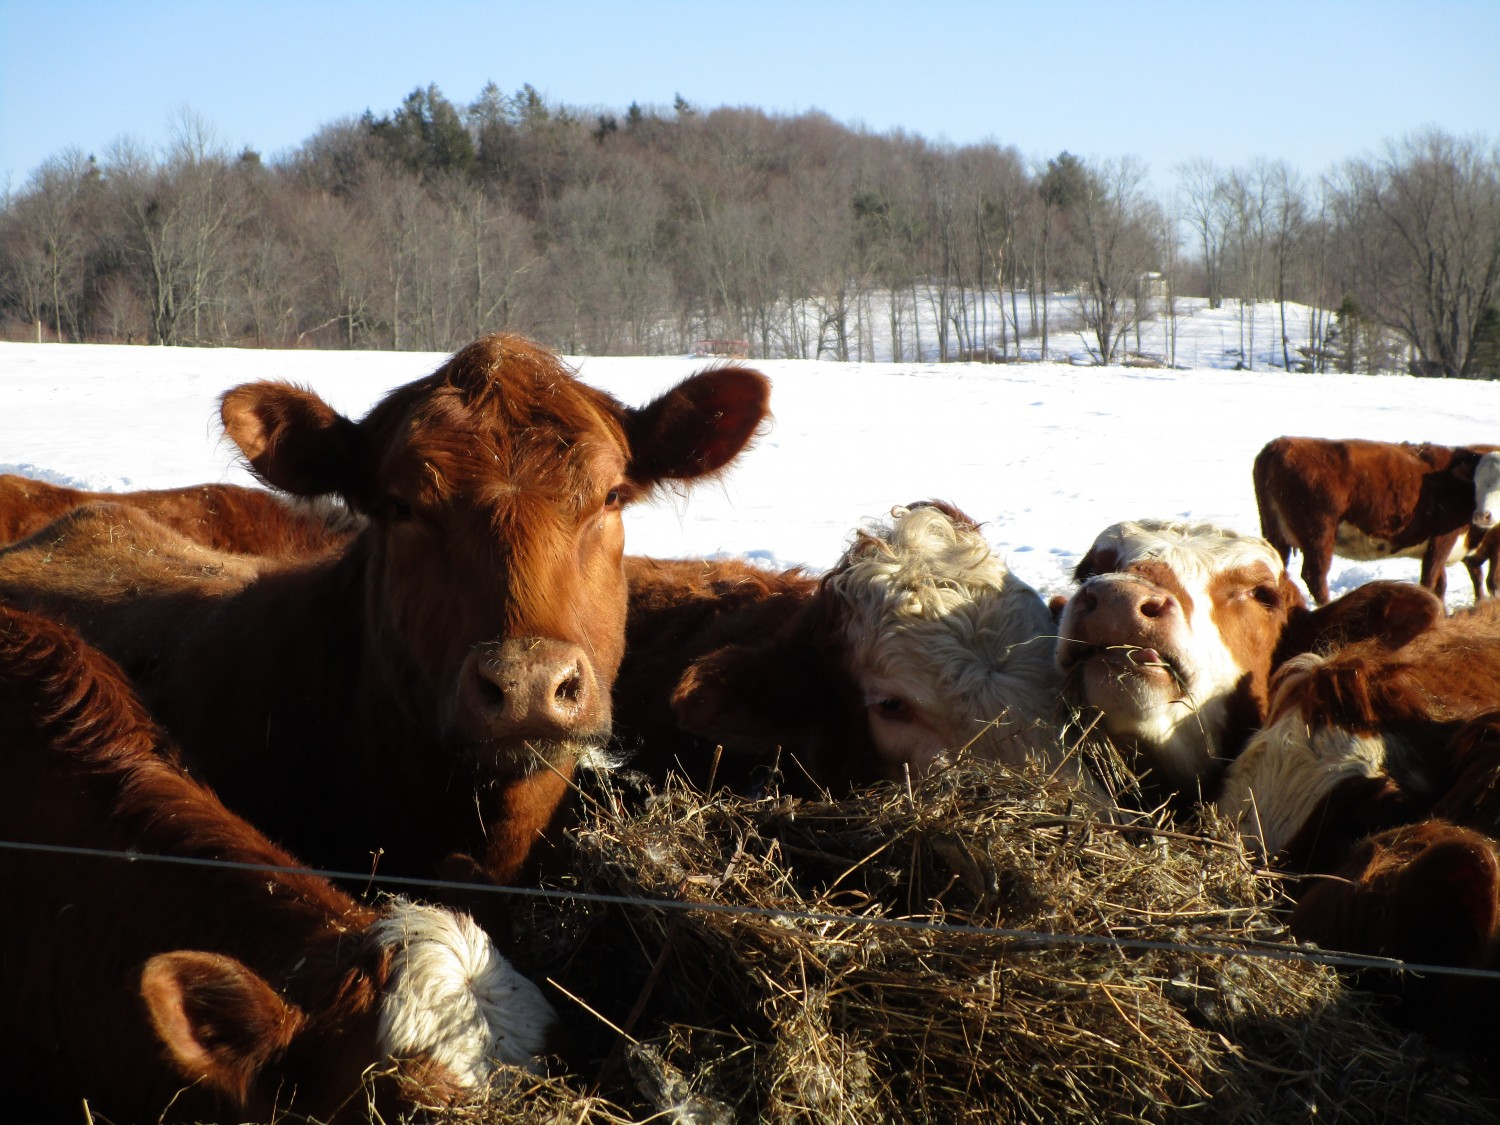 Cows - Image by Shayna Benskie